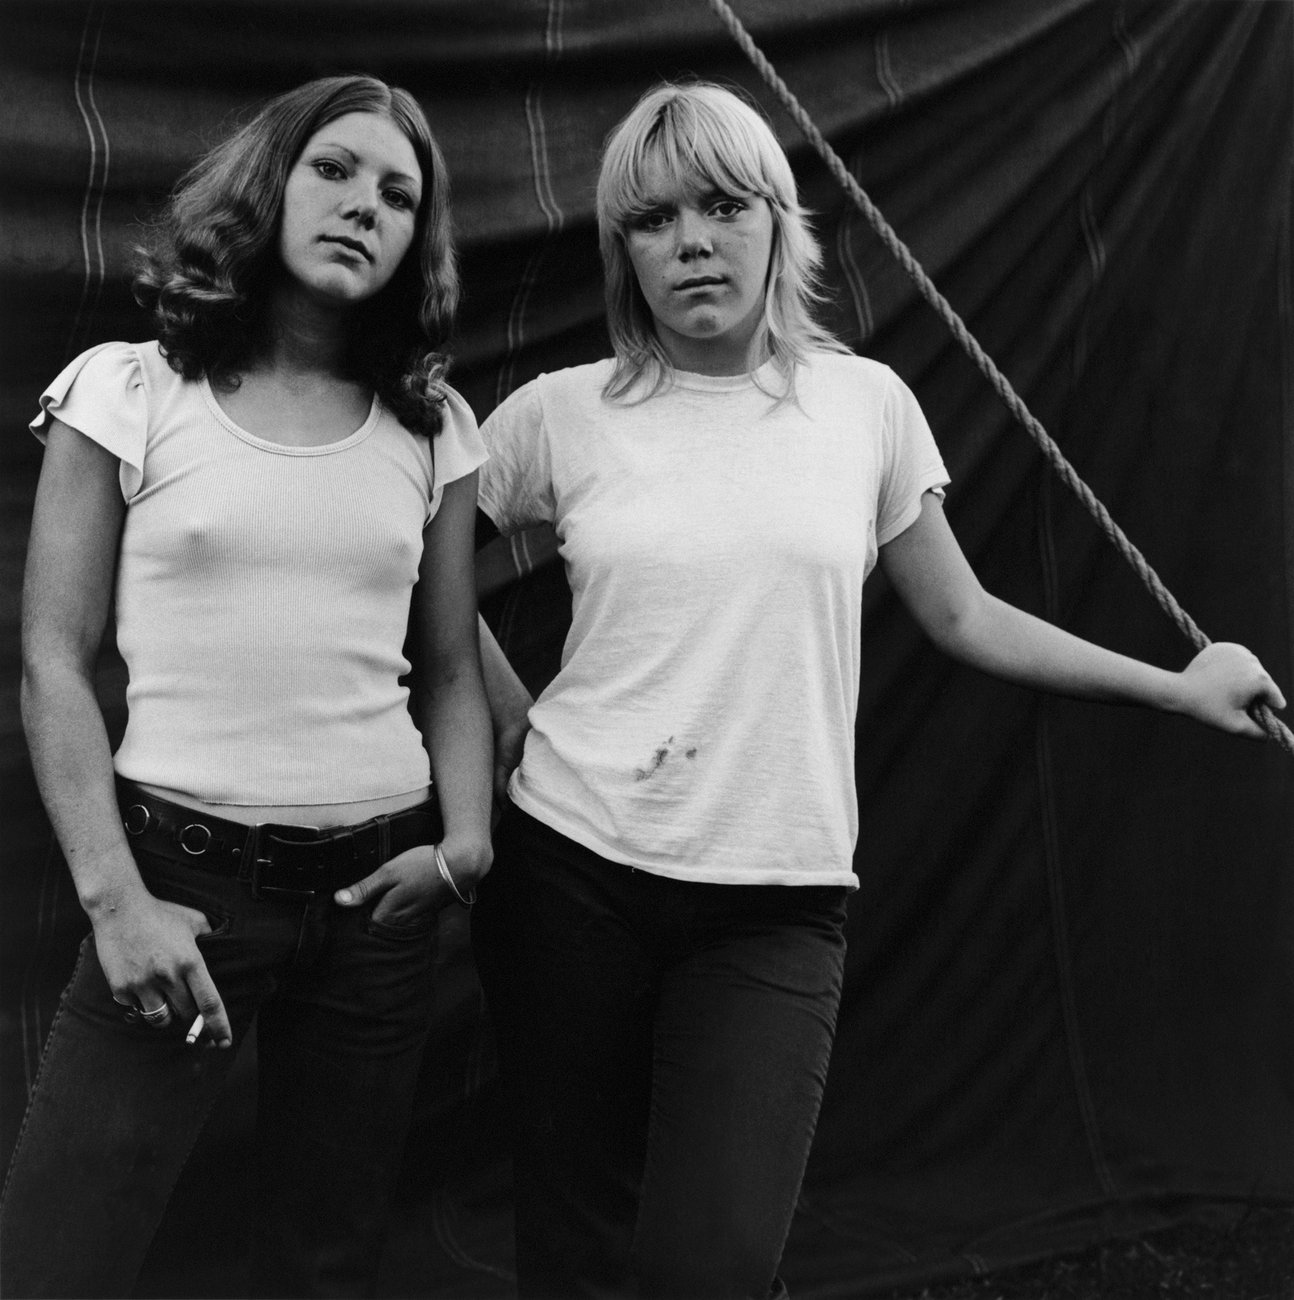 Black and white photo of two young women in tank tops and jeans standing in front of a curtain or tent